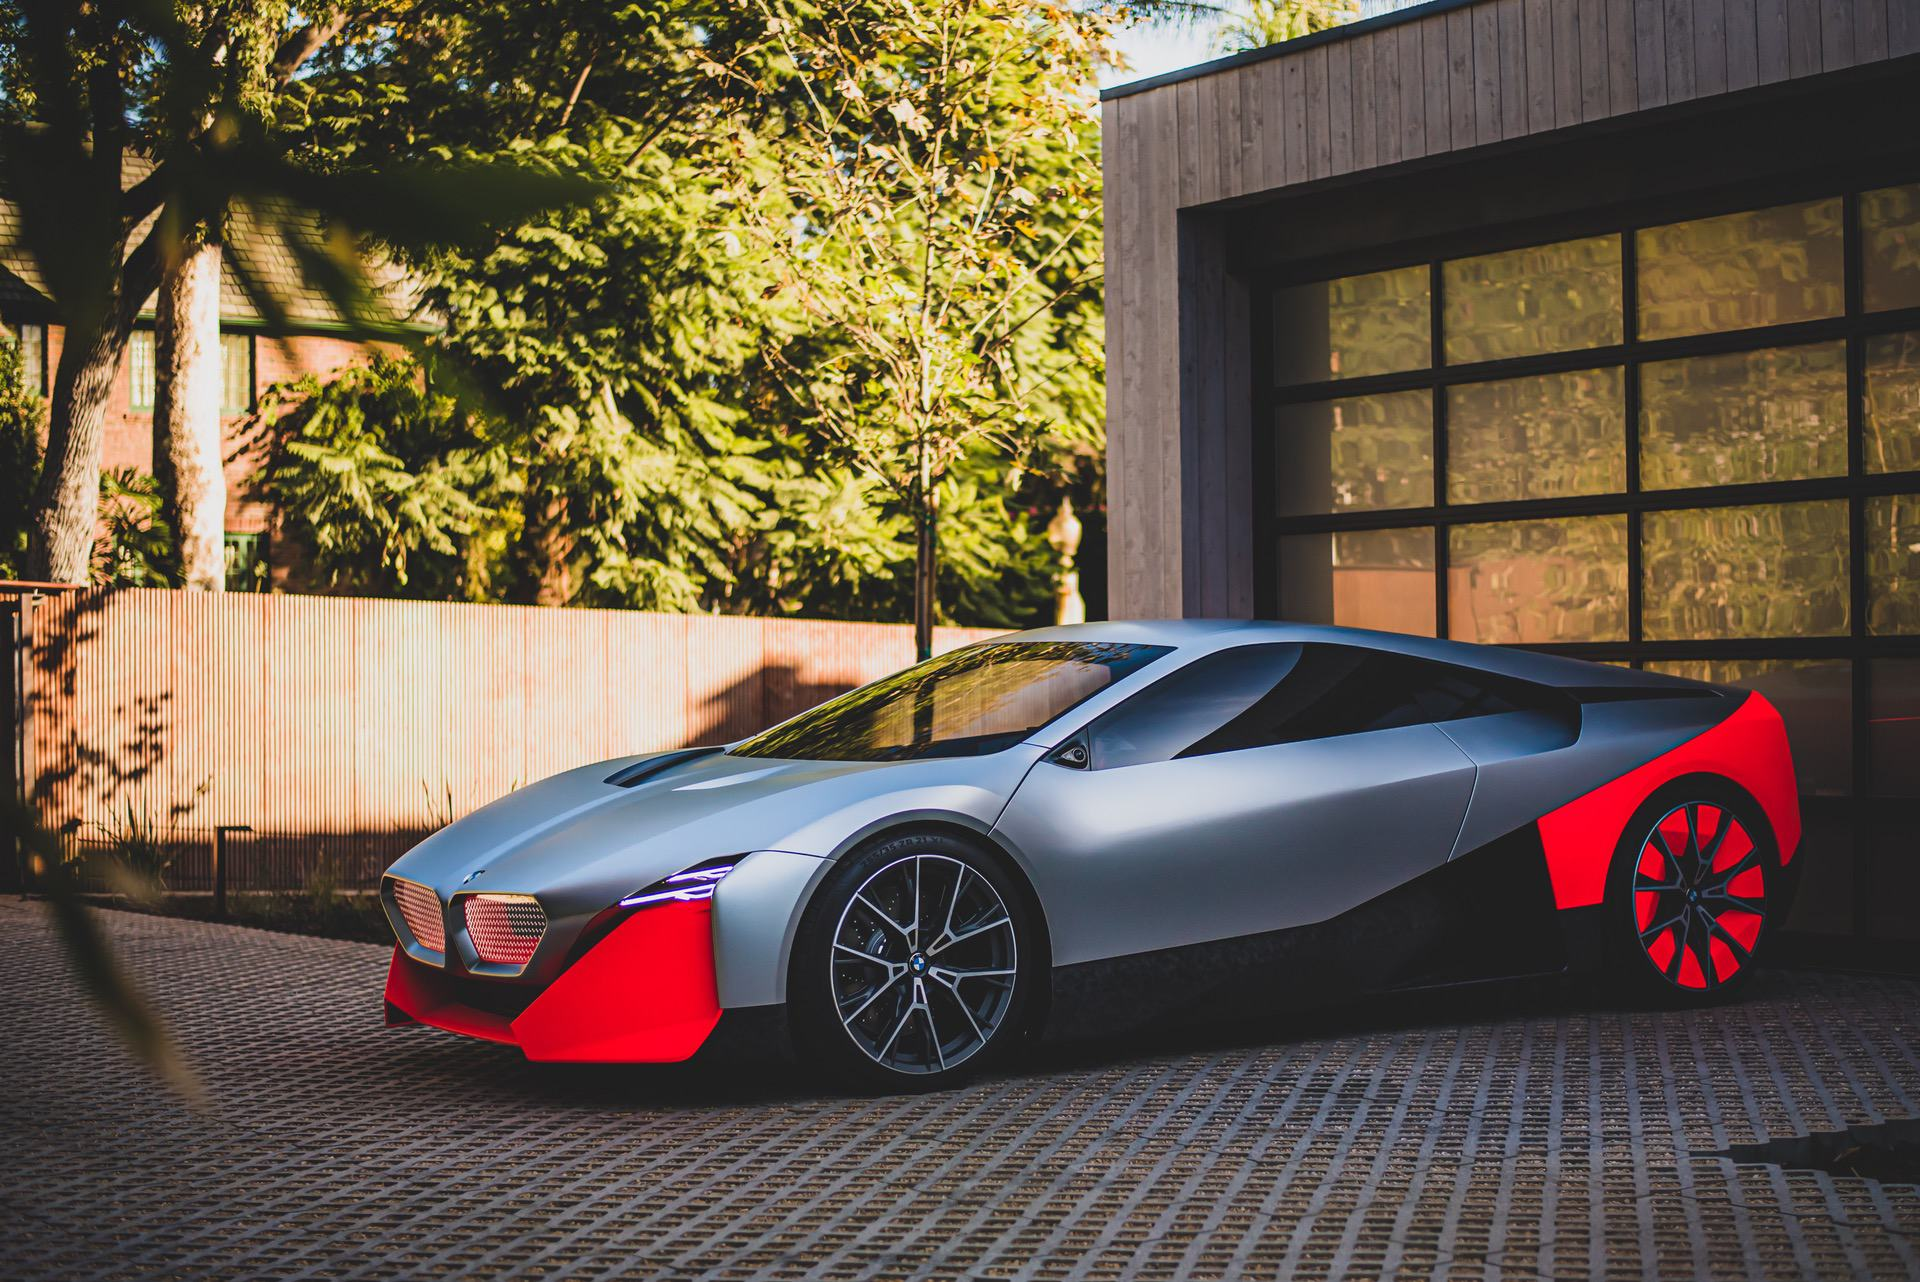 Inext M Next Supercar And X8 Are The Pillars Of Bmw S Overhaul